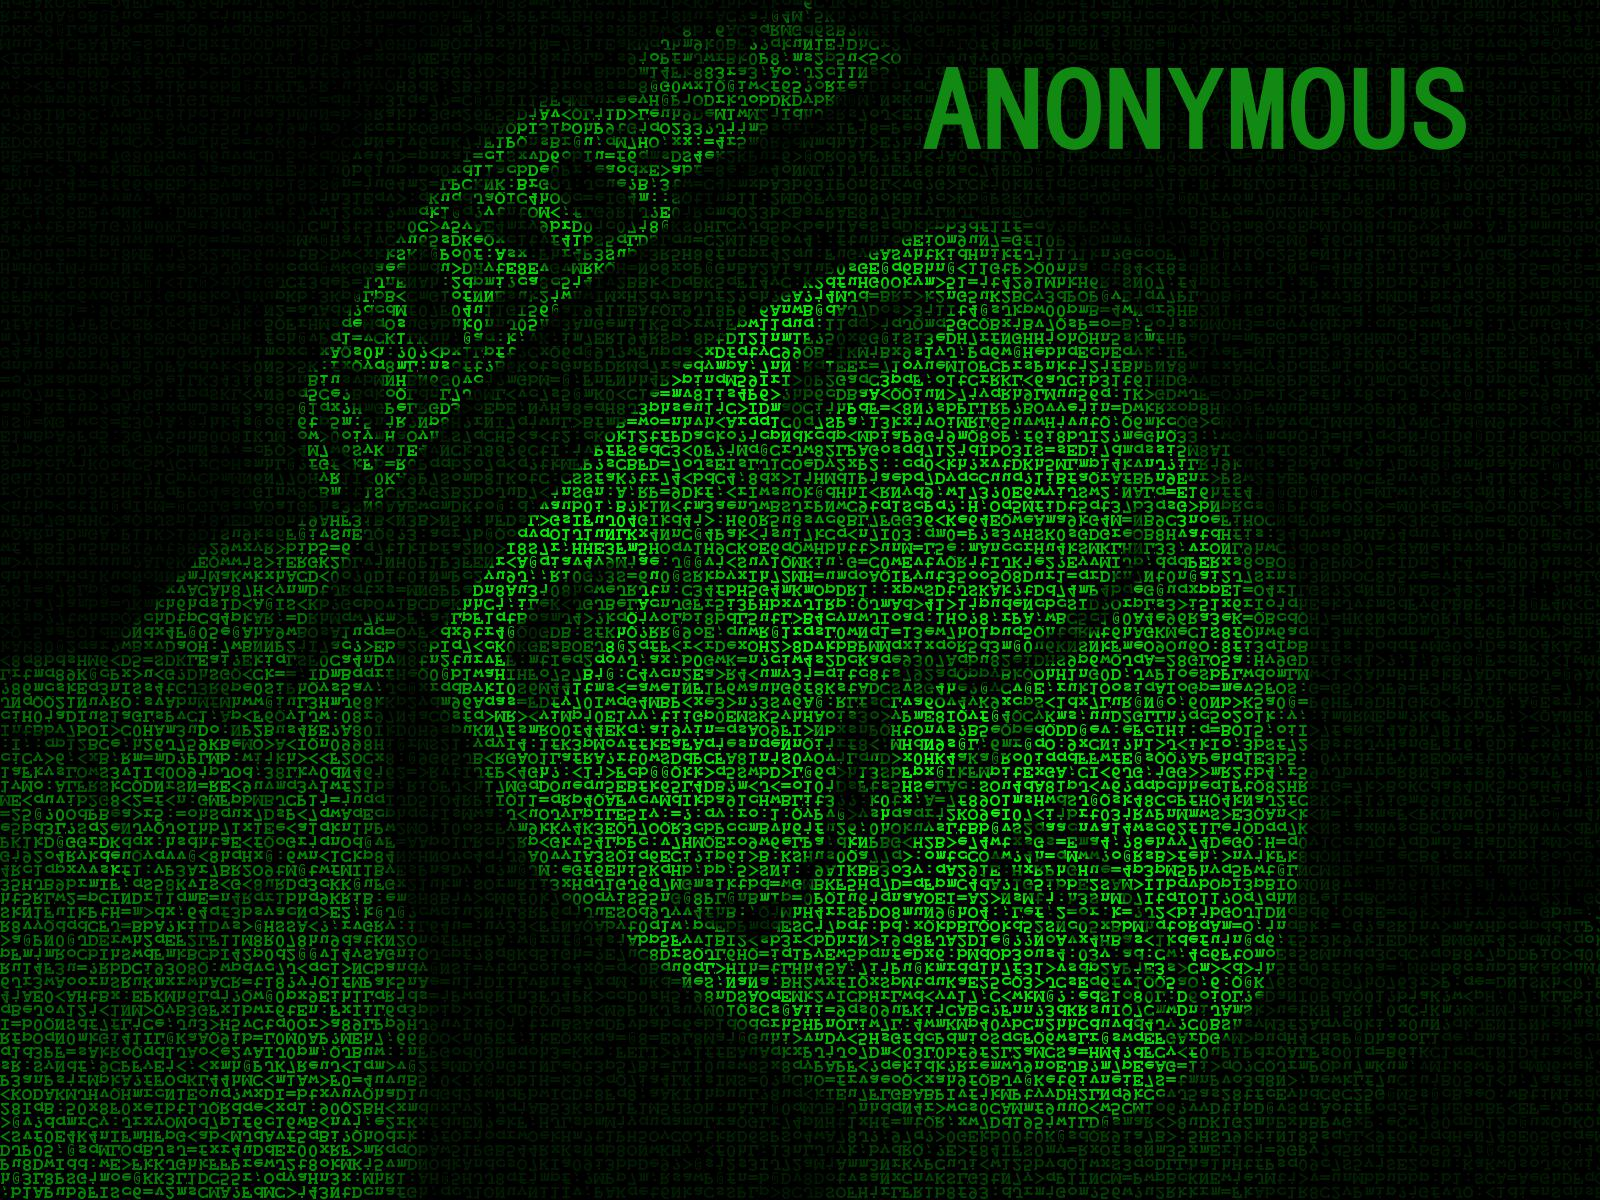 Guy Fawkes Anonymous Mask Hd Wallpaper Image For Desktop